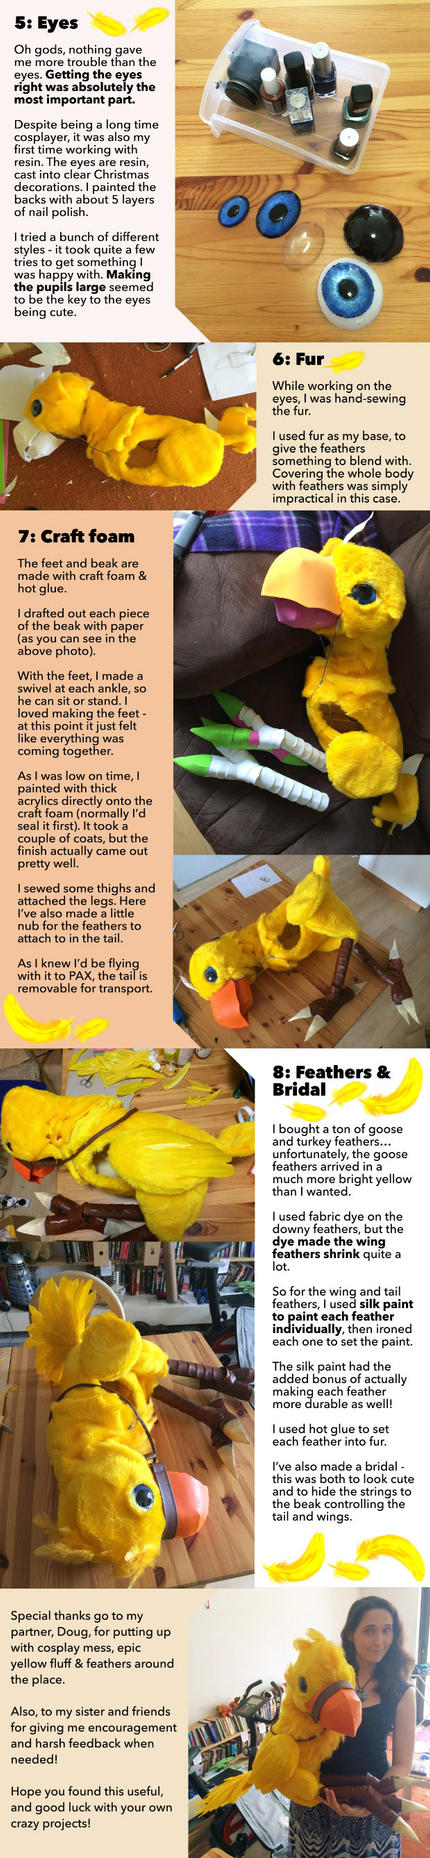 Making of Bobbin the Chocobo Puppet Part 2 by Risachantag